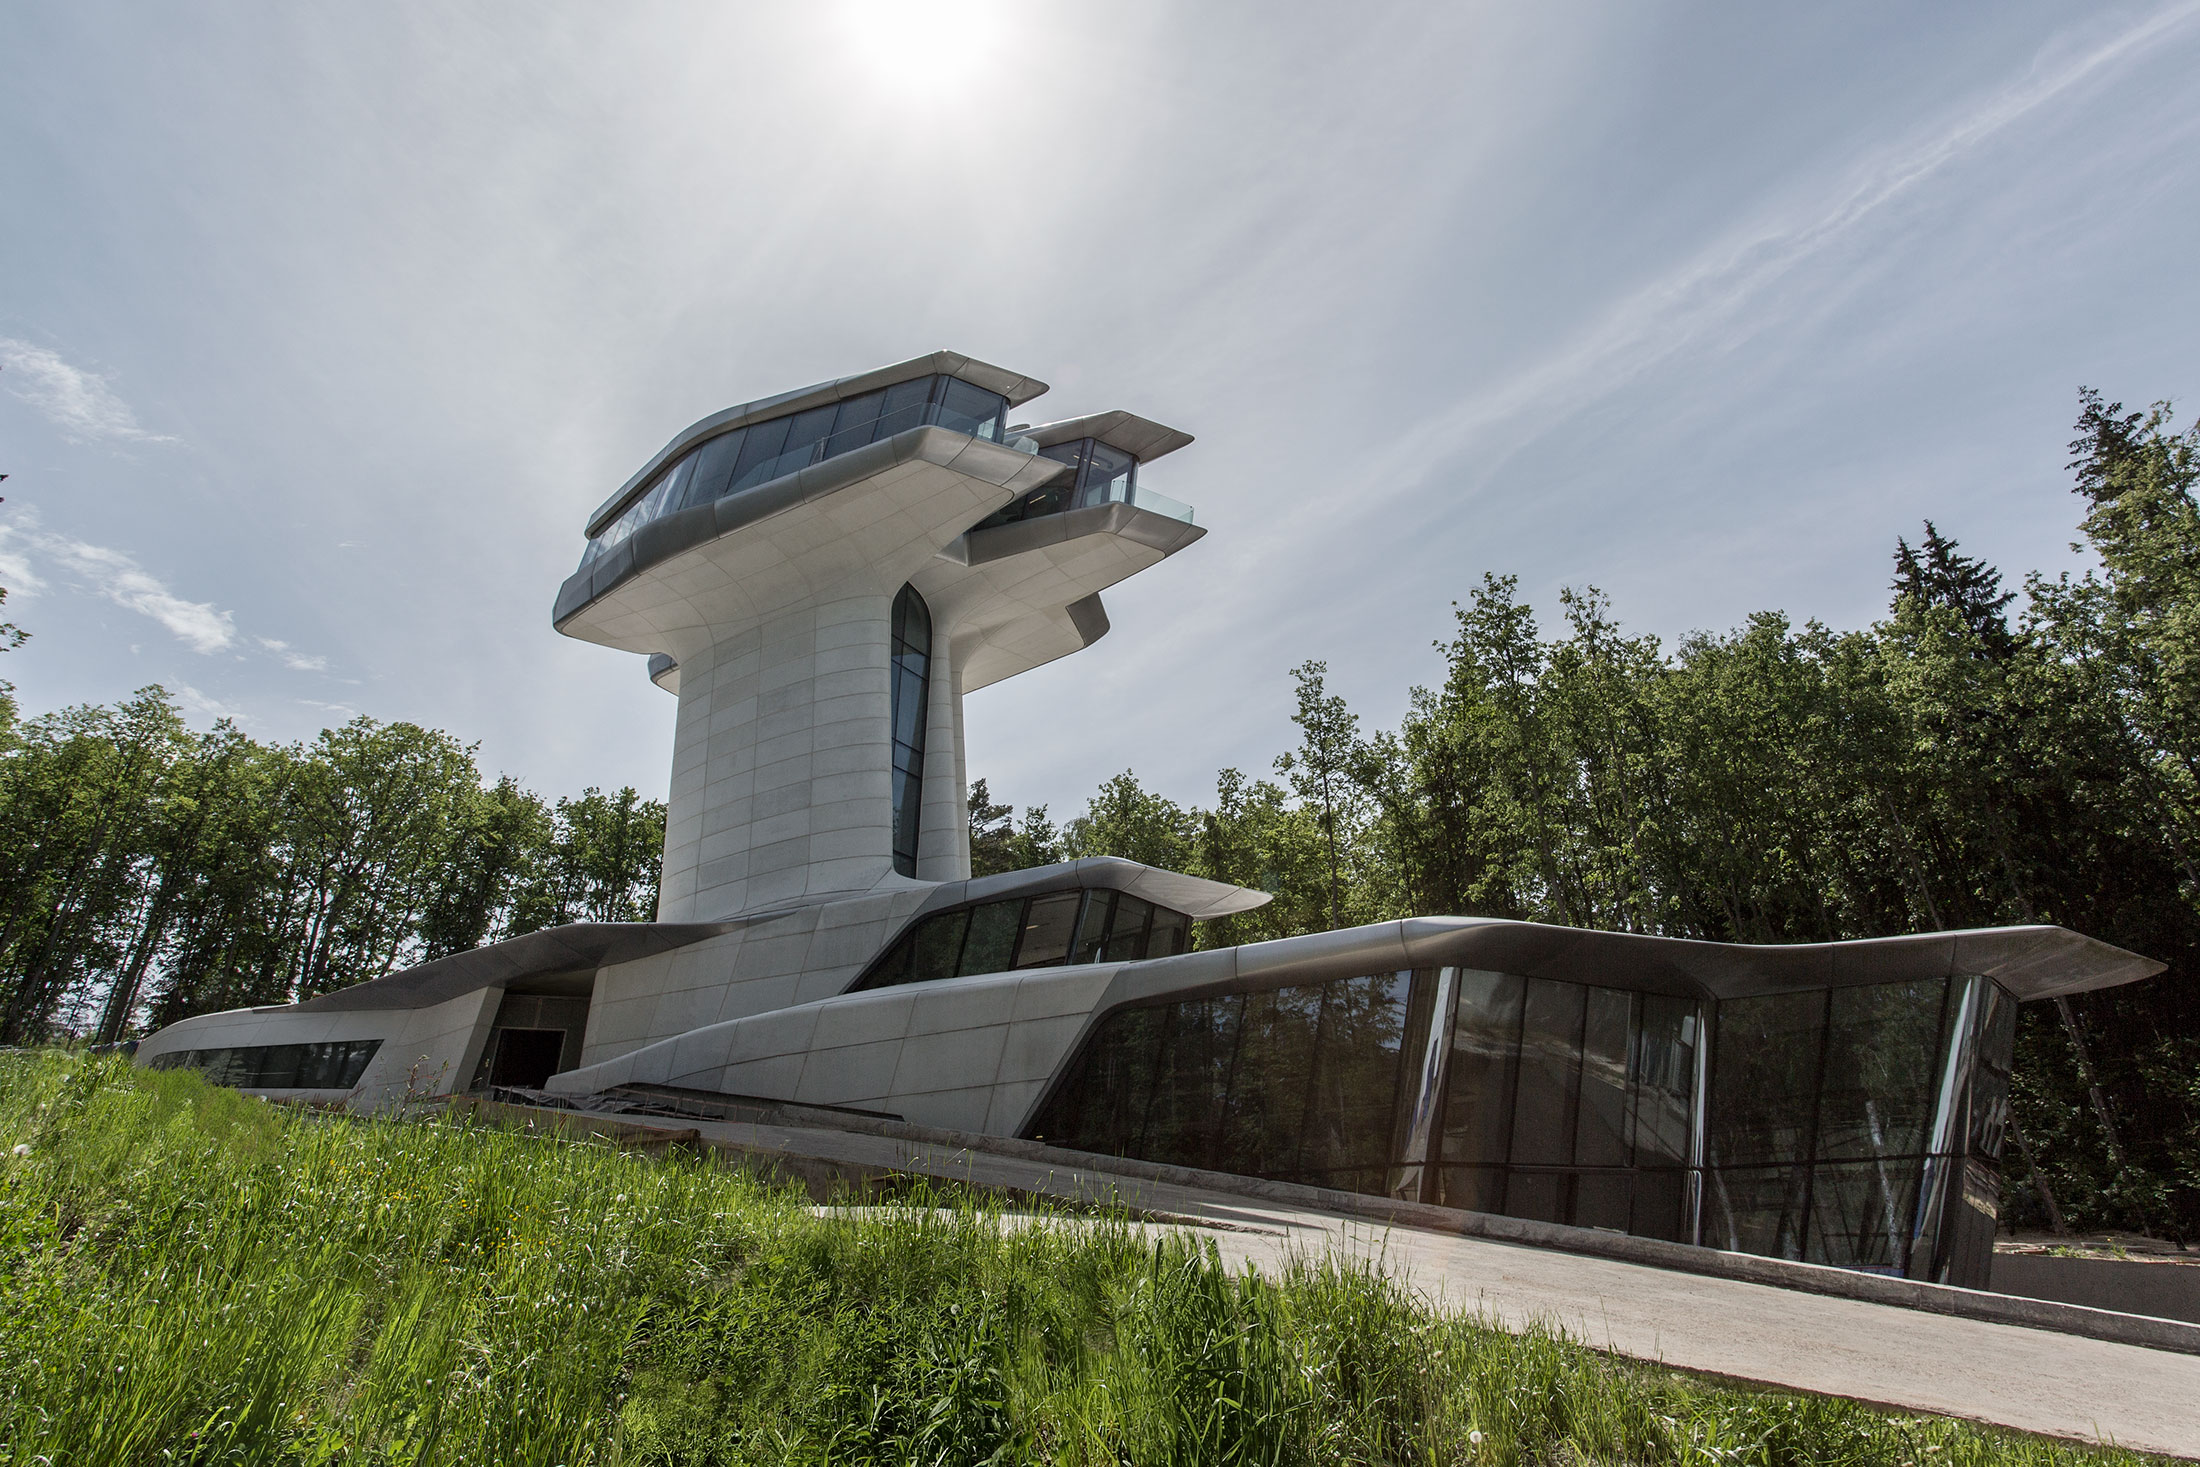 Doronin's private residence, designed by Zaha Hadid. (Photo: D. Fiser/Courtesy Zaha Hadid Architects.)